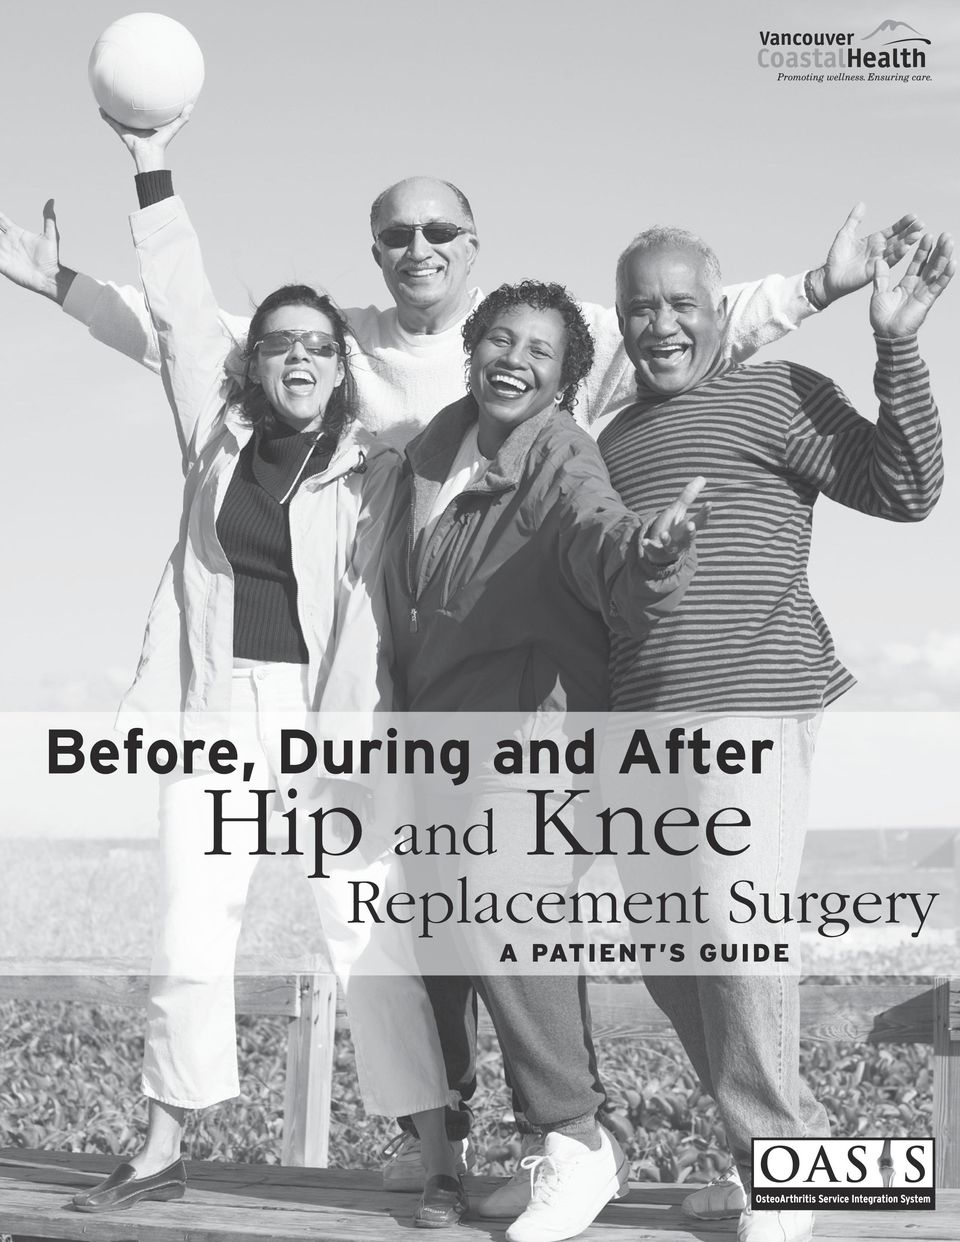 Replacement Surgery